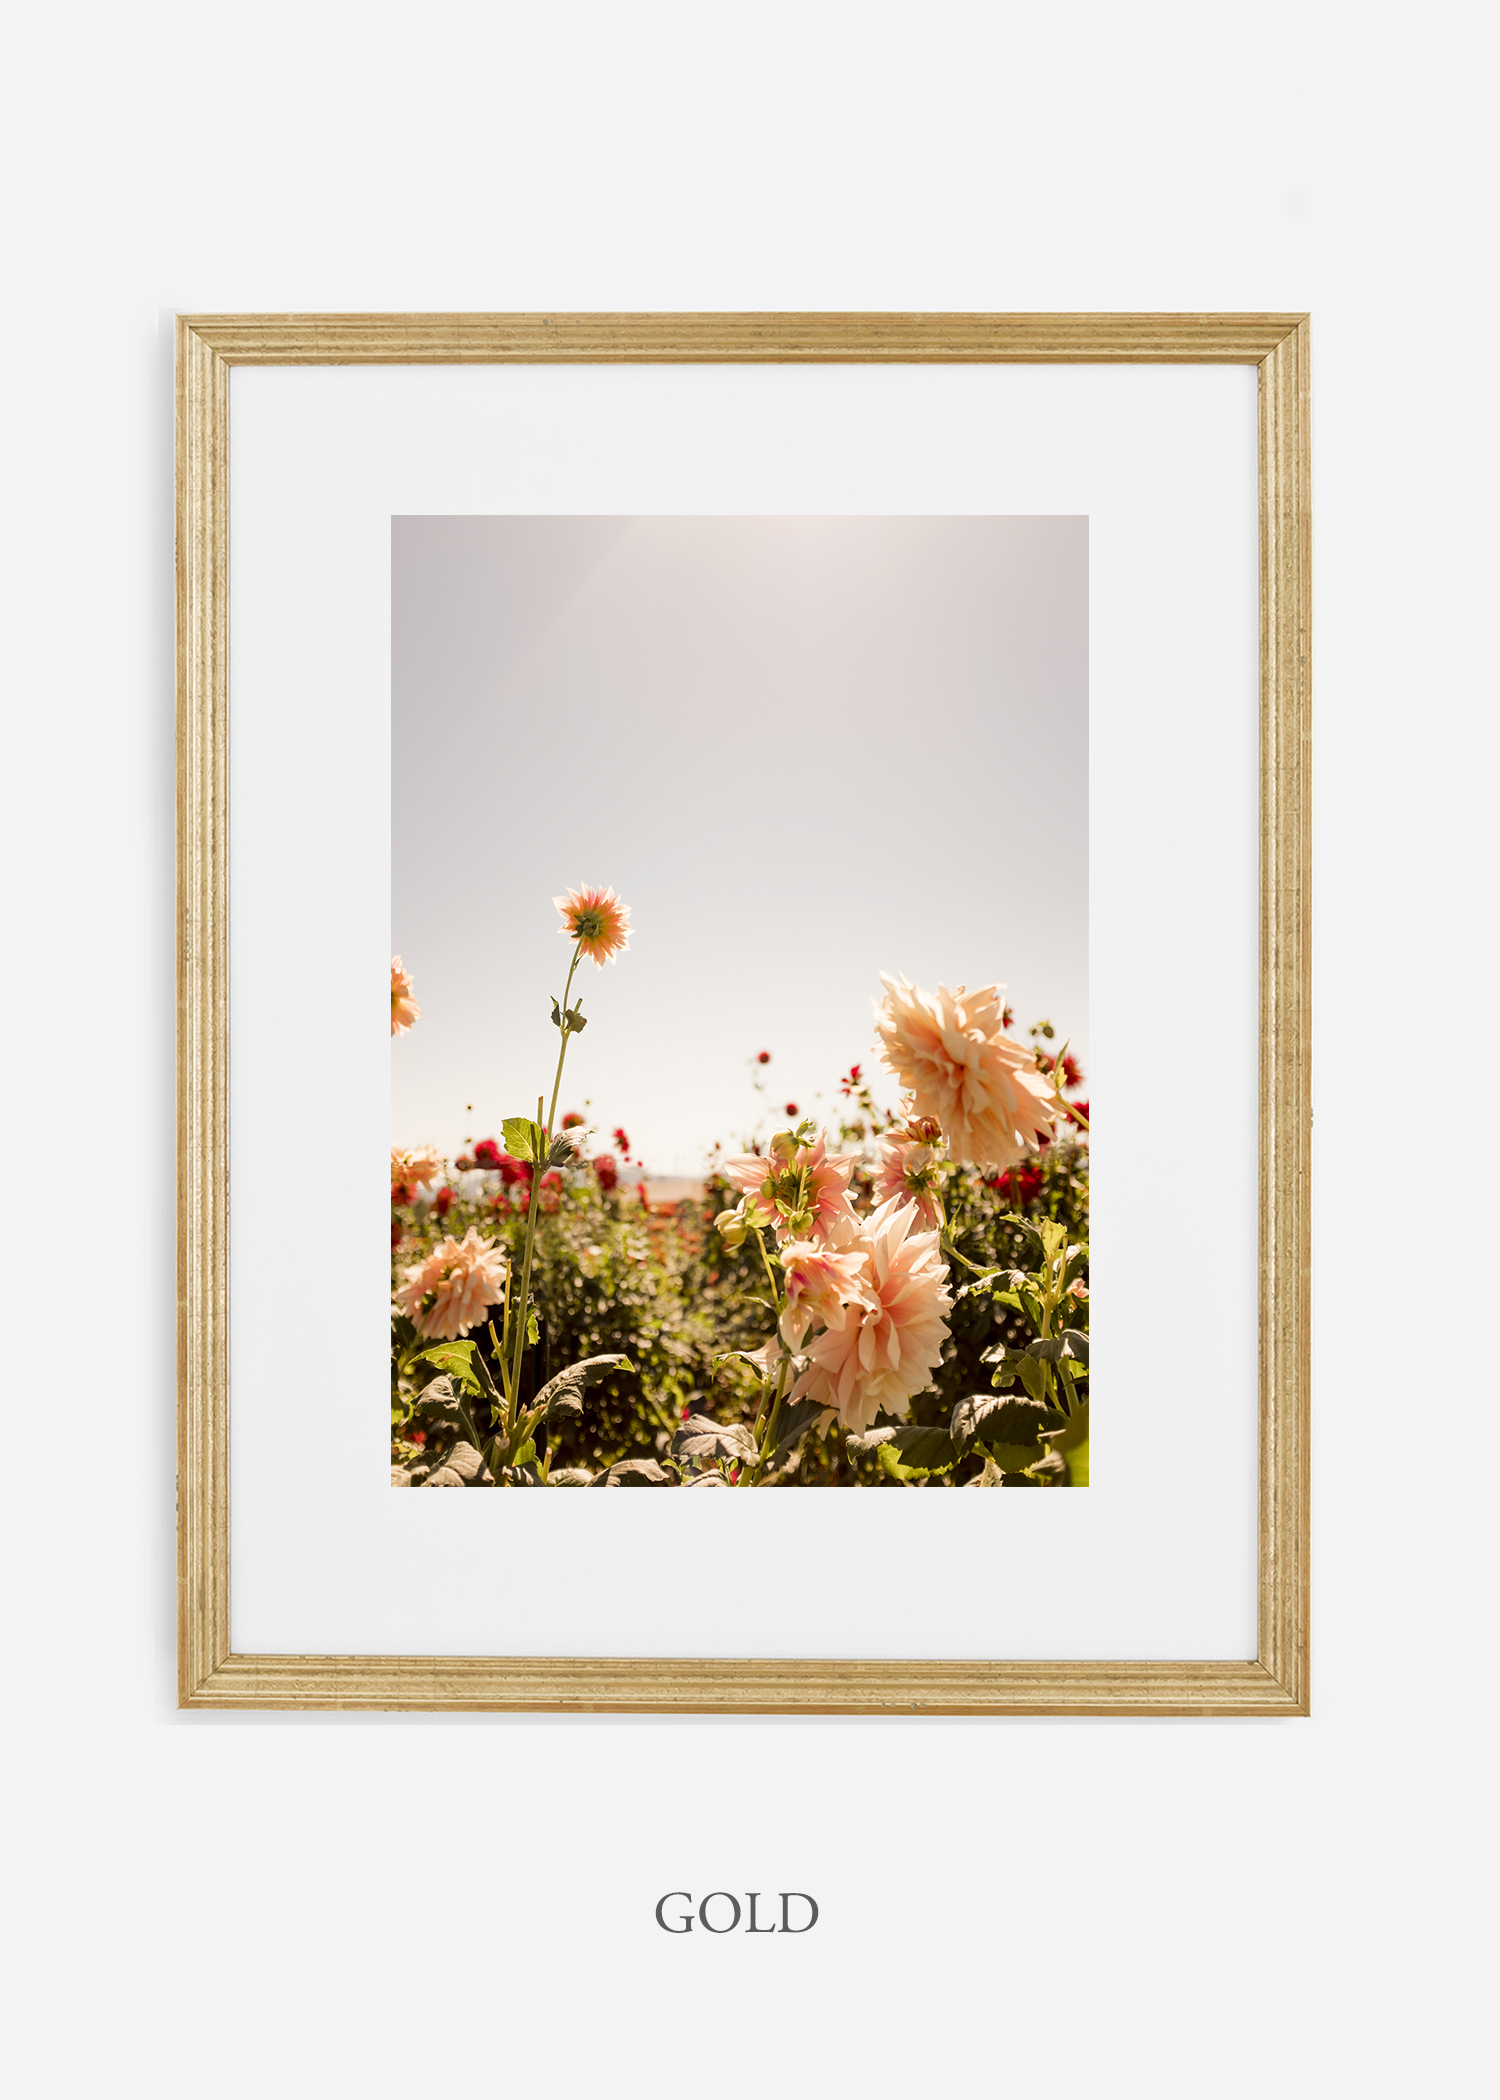 DahliaNo.6-gold-frame-mat-interior-design-botanical-print-art-wilder-california-wilder-paper.jpg